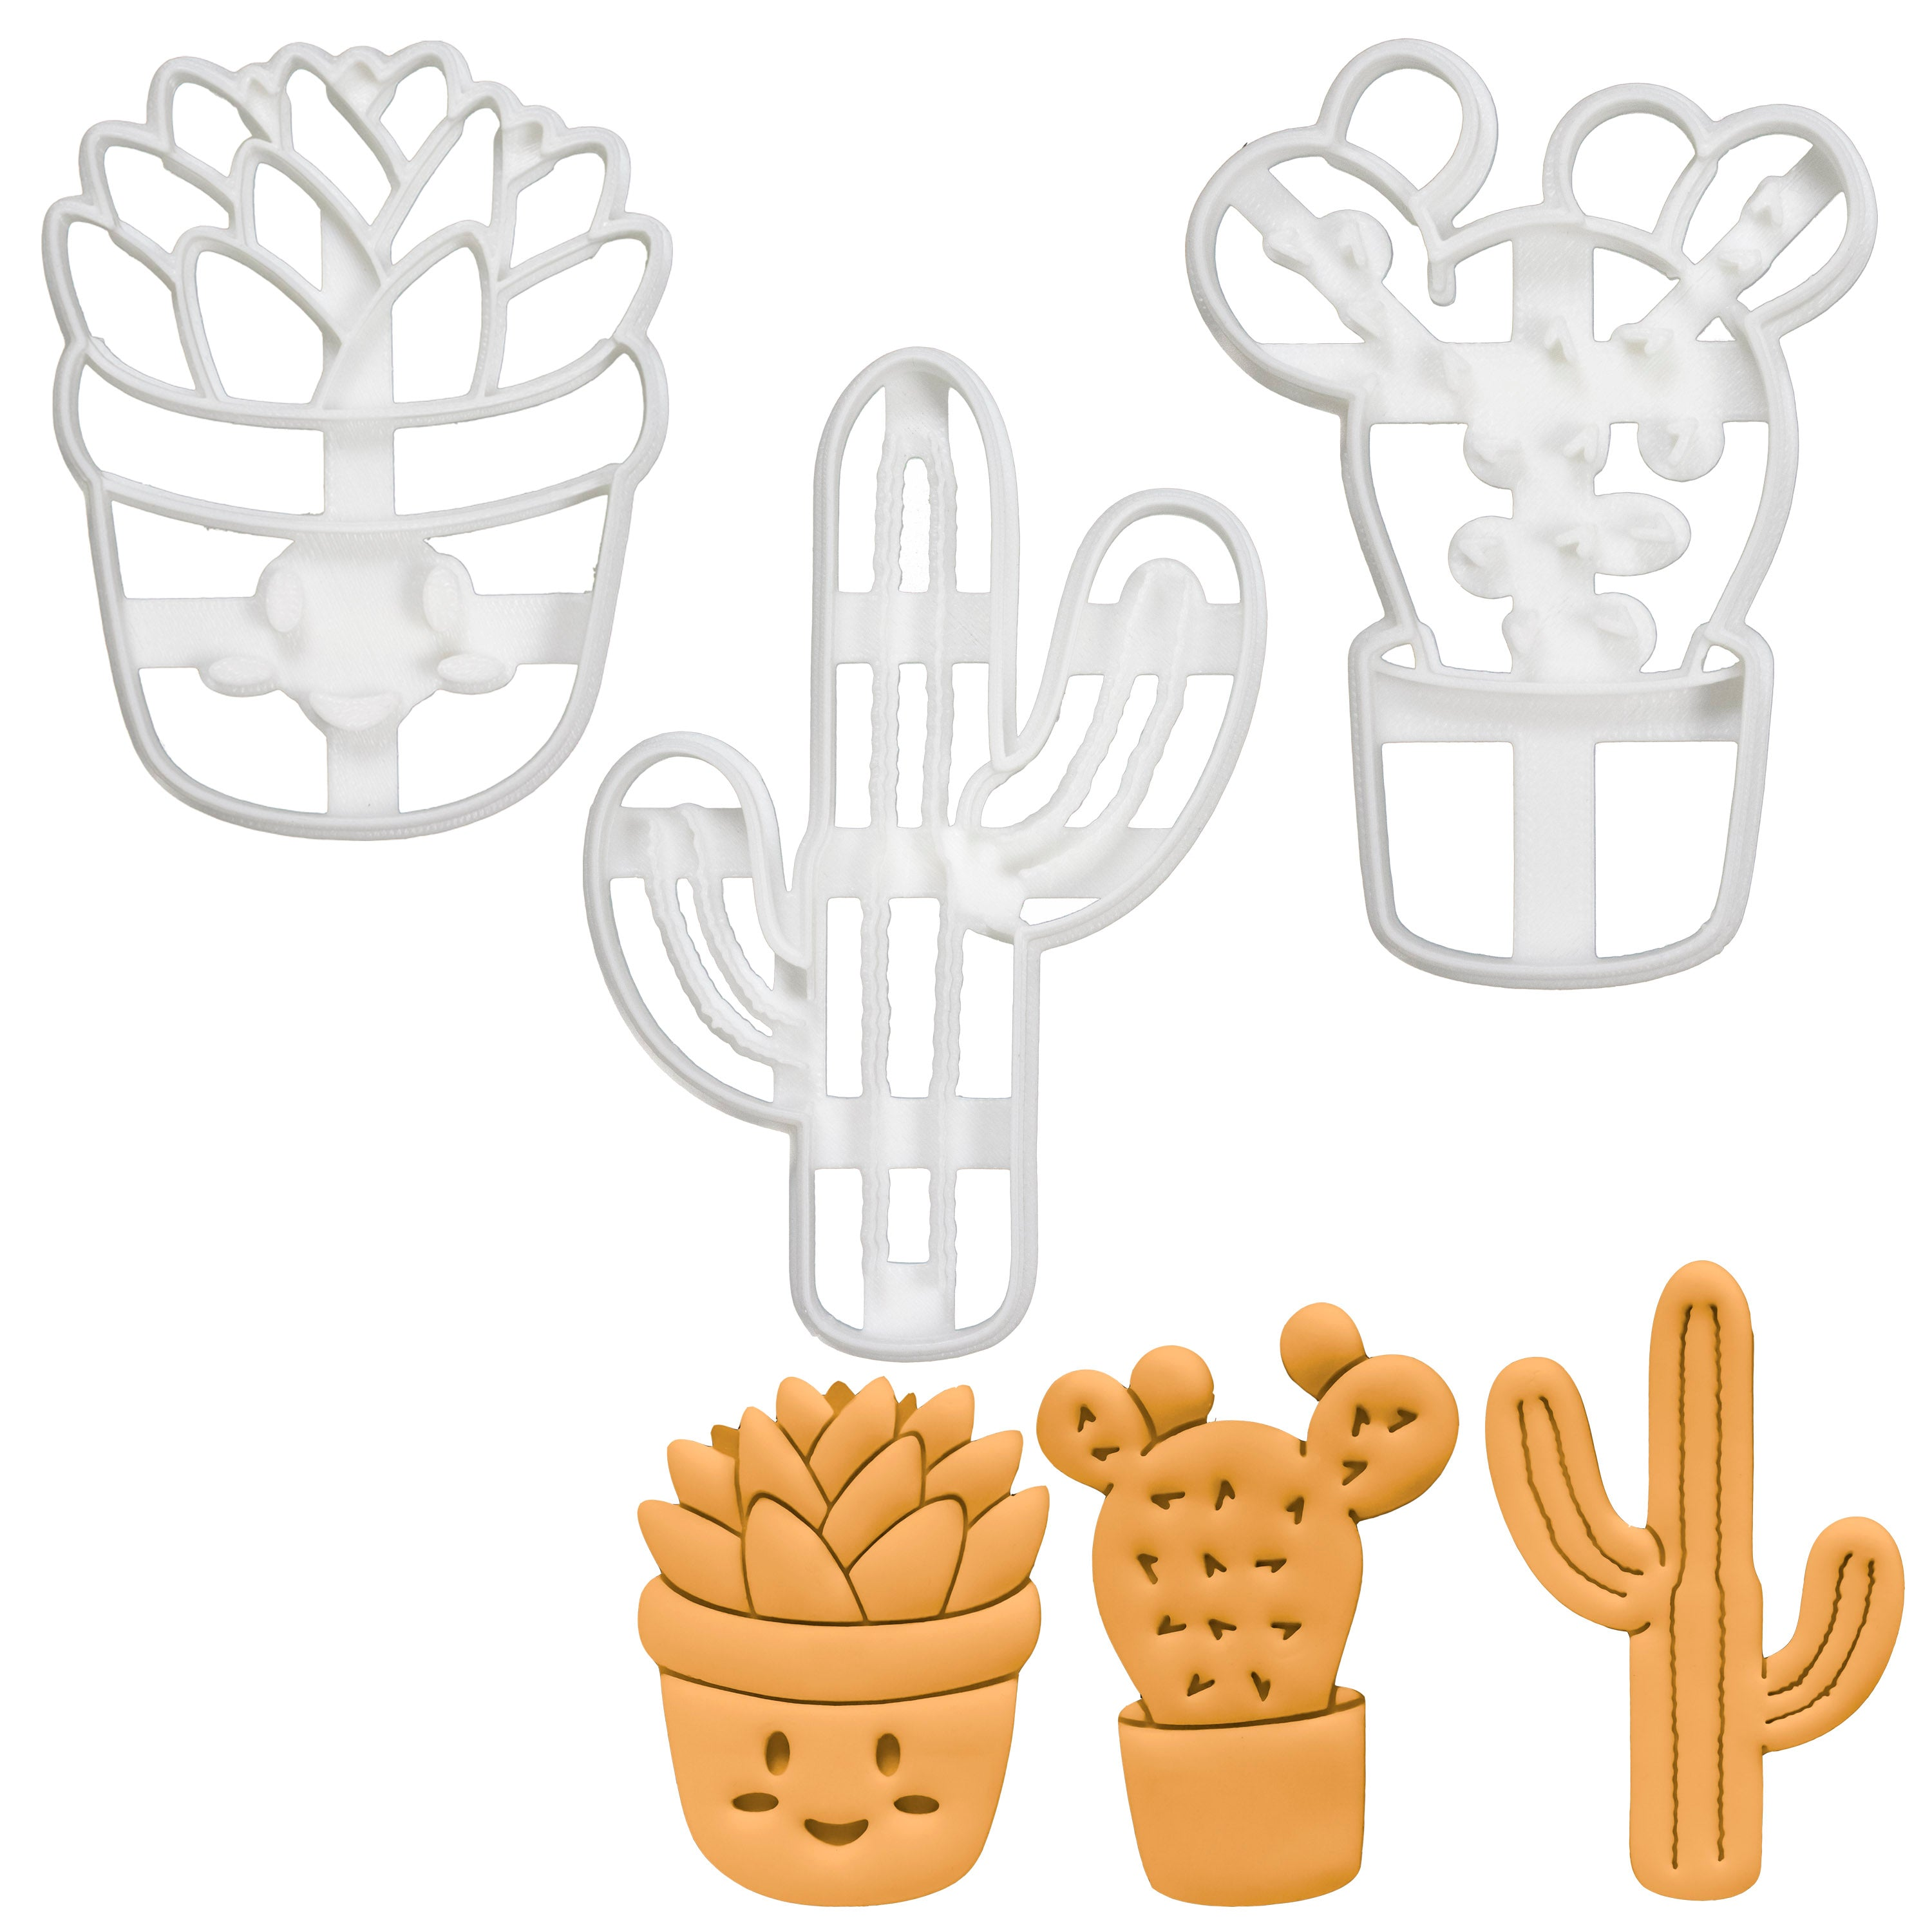 Tall Cactus (Saguaro), potted prickly pear, and succulent cookie cutters